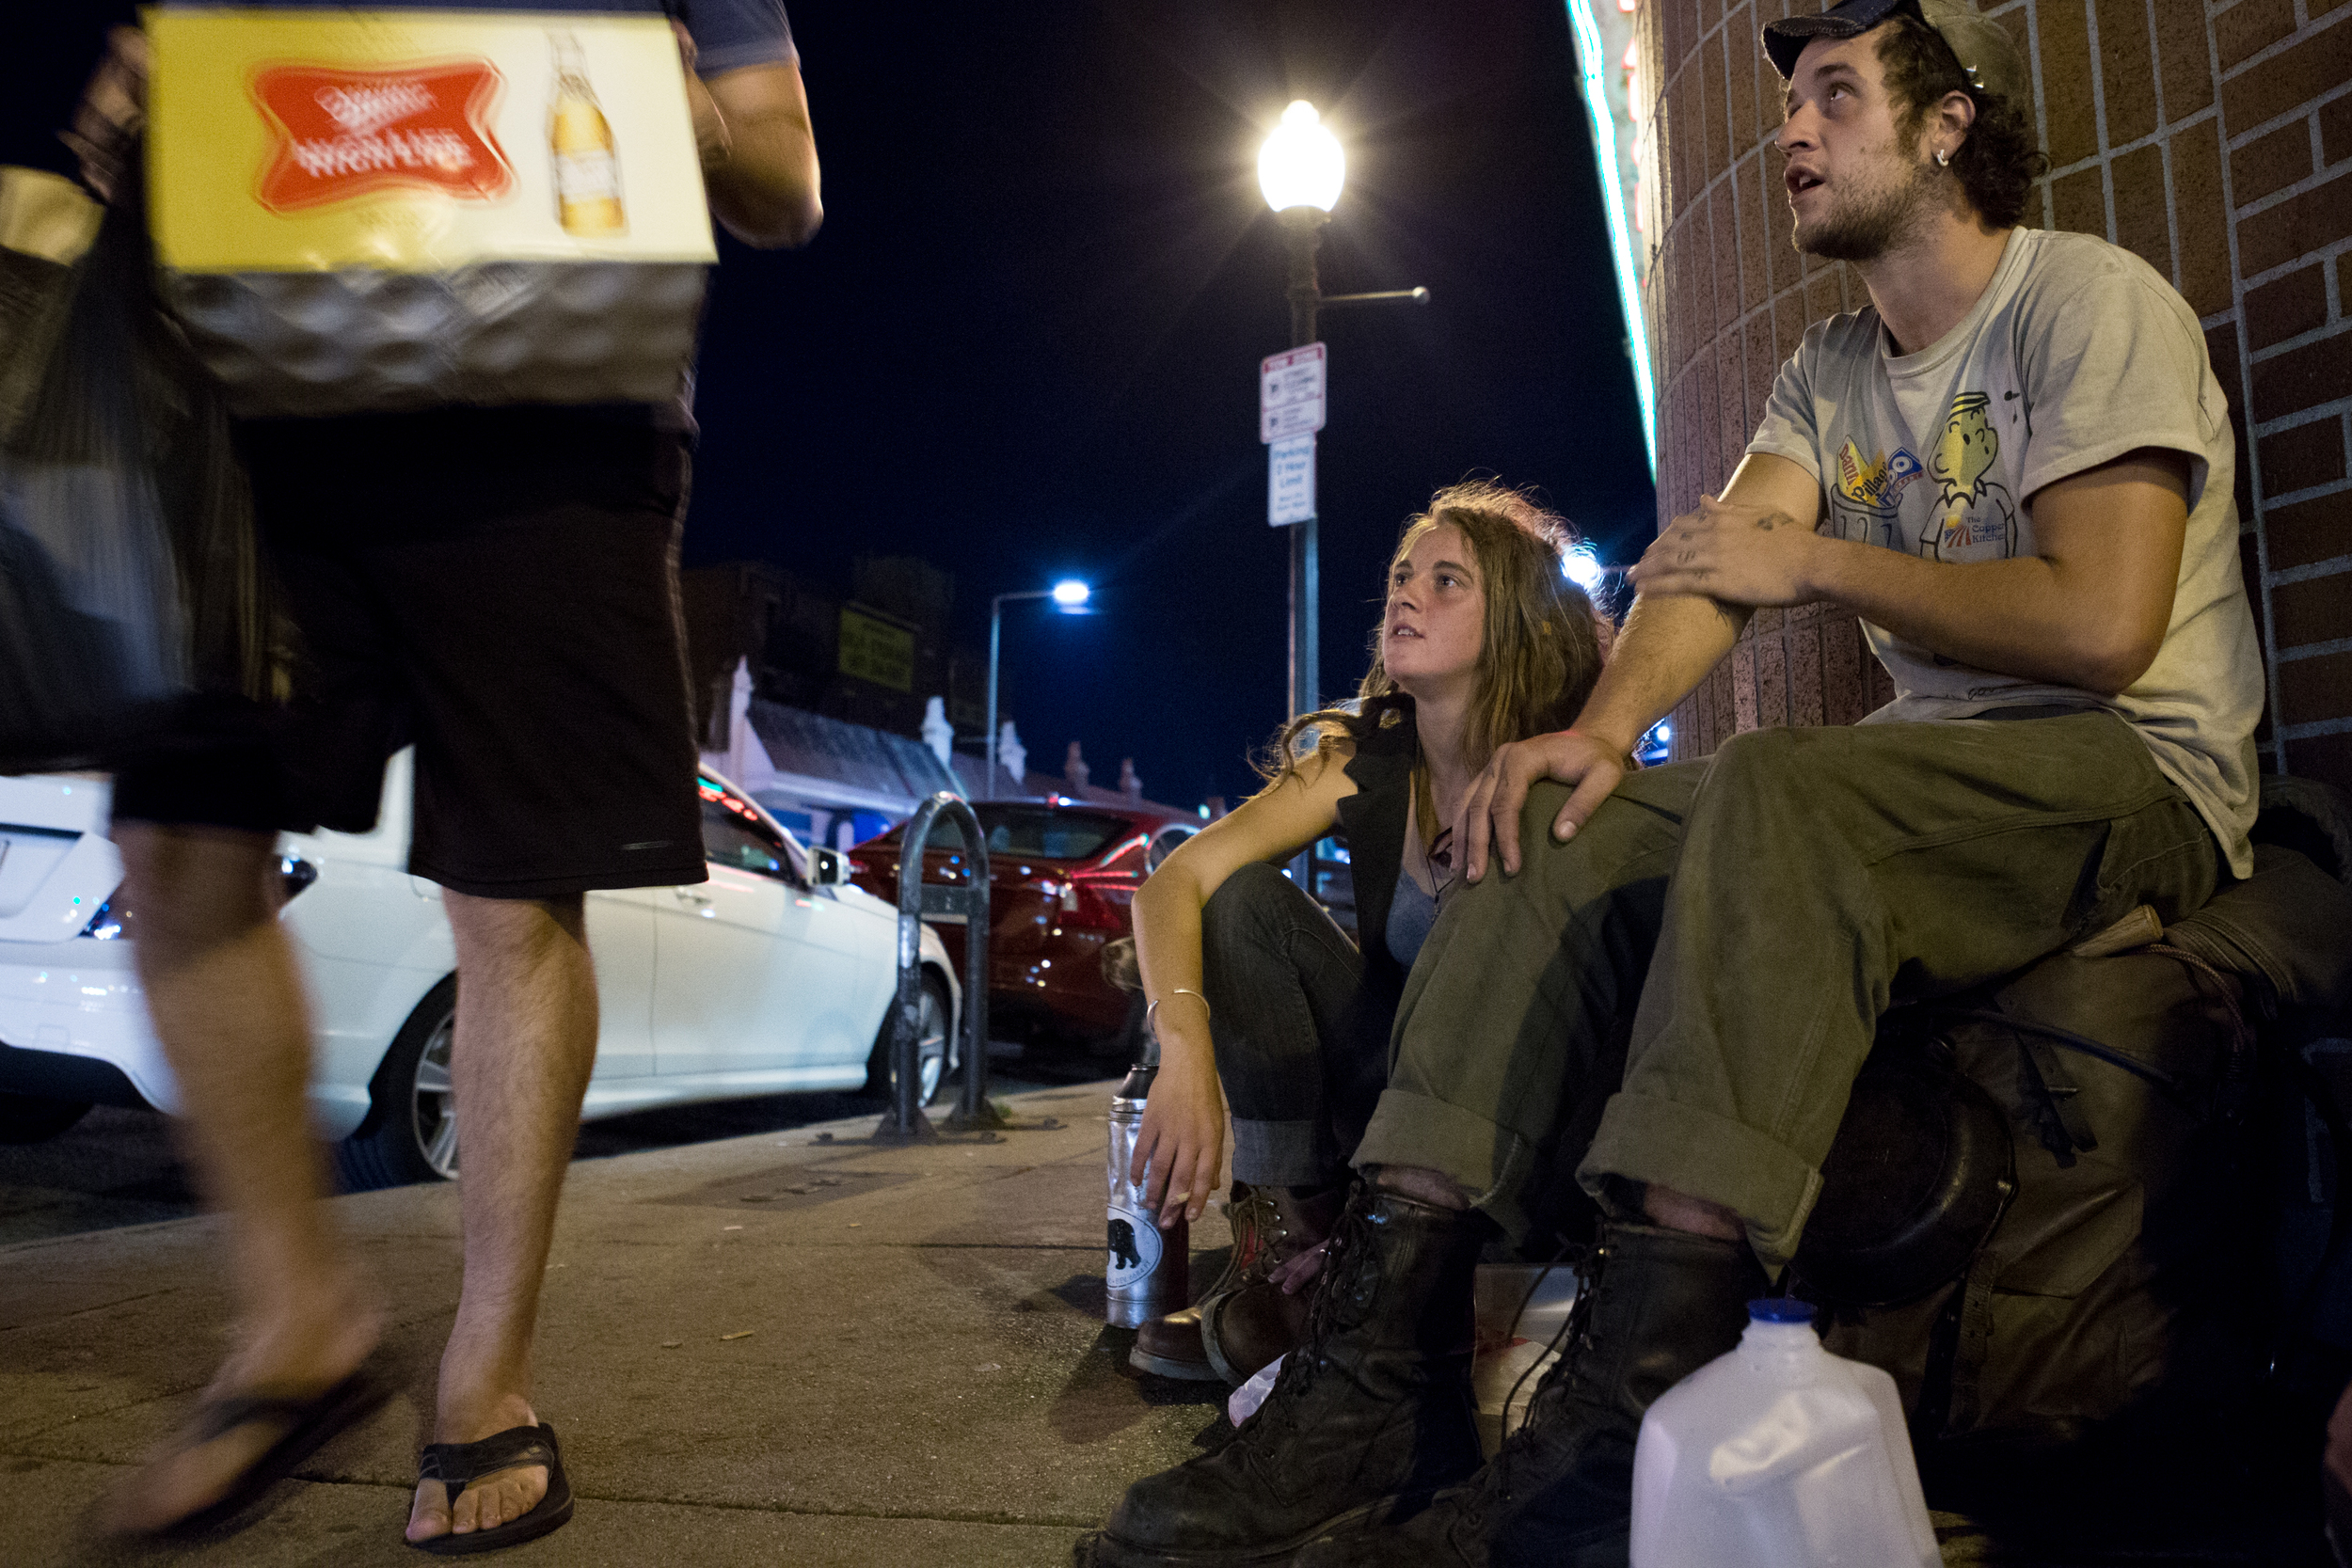 """Two homeless 20-year-olds who asked to be identified as Toby (left) and Anchor (right) ask a pedestrian for one of his beers outside Blanchard's liquor store in Allston. """"We don't do drugs or anything, we're just alcoholics,"""" Anchor said.   Photo credit: Justin Saglio"""